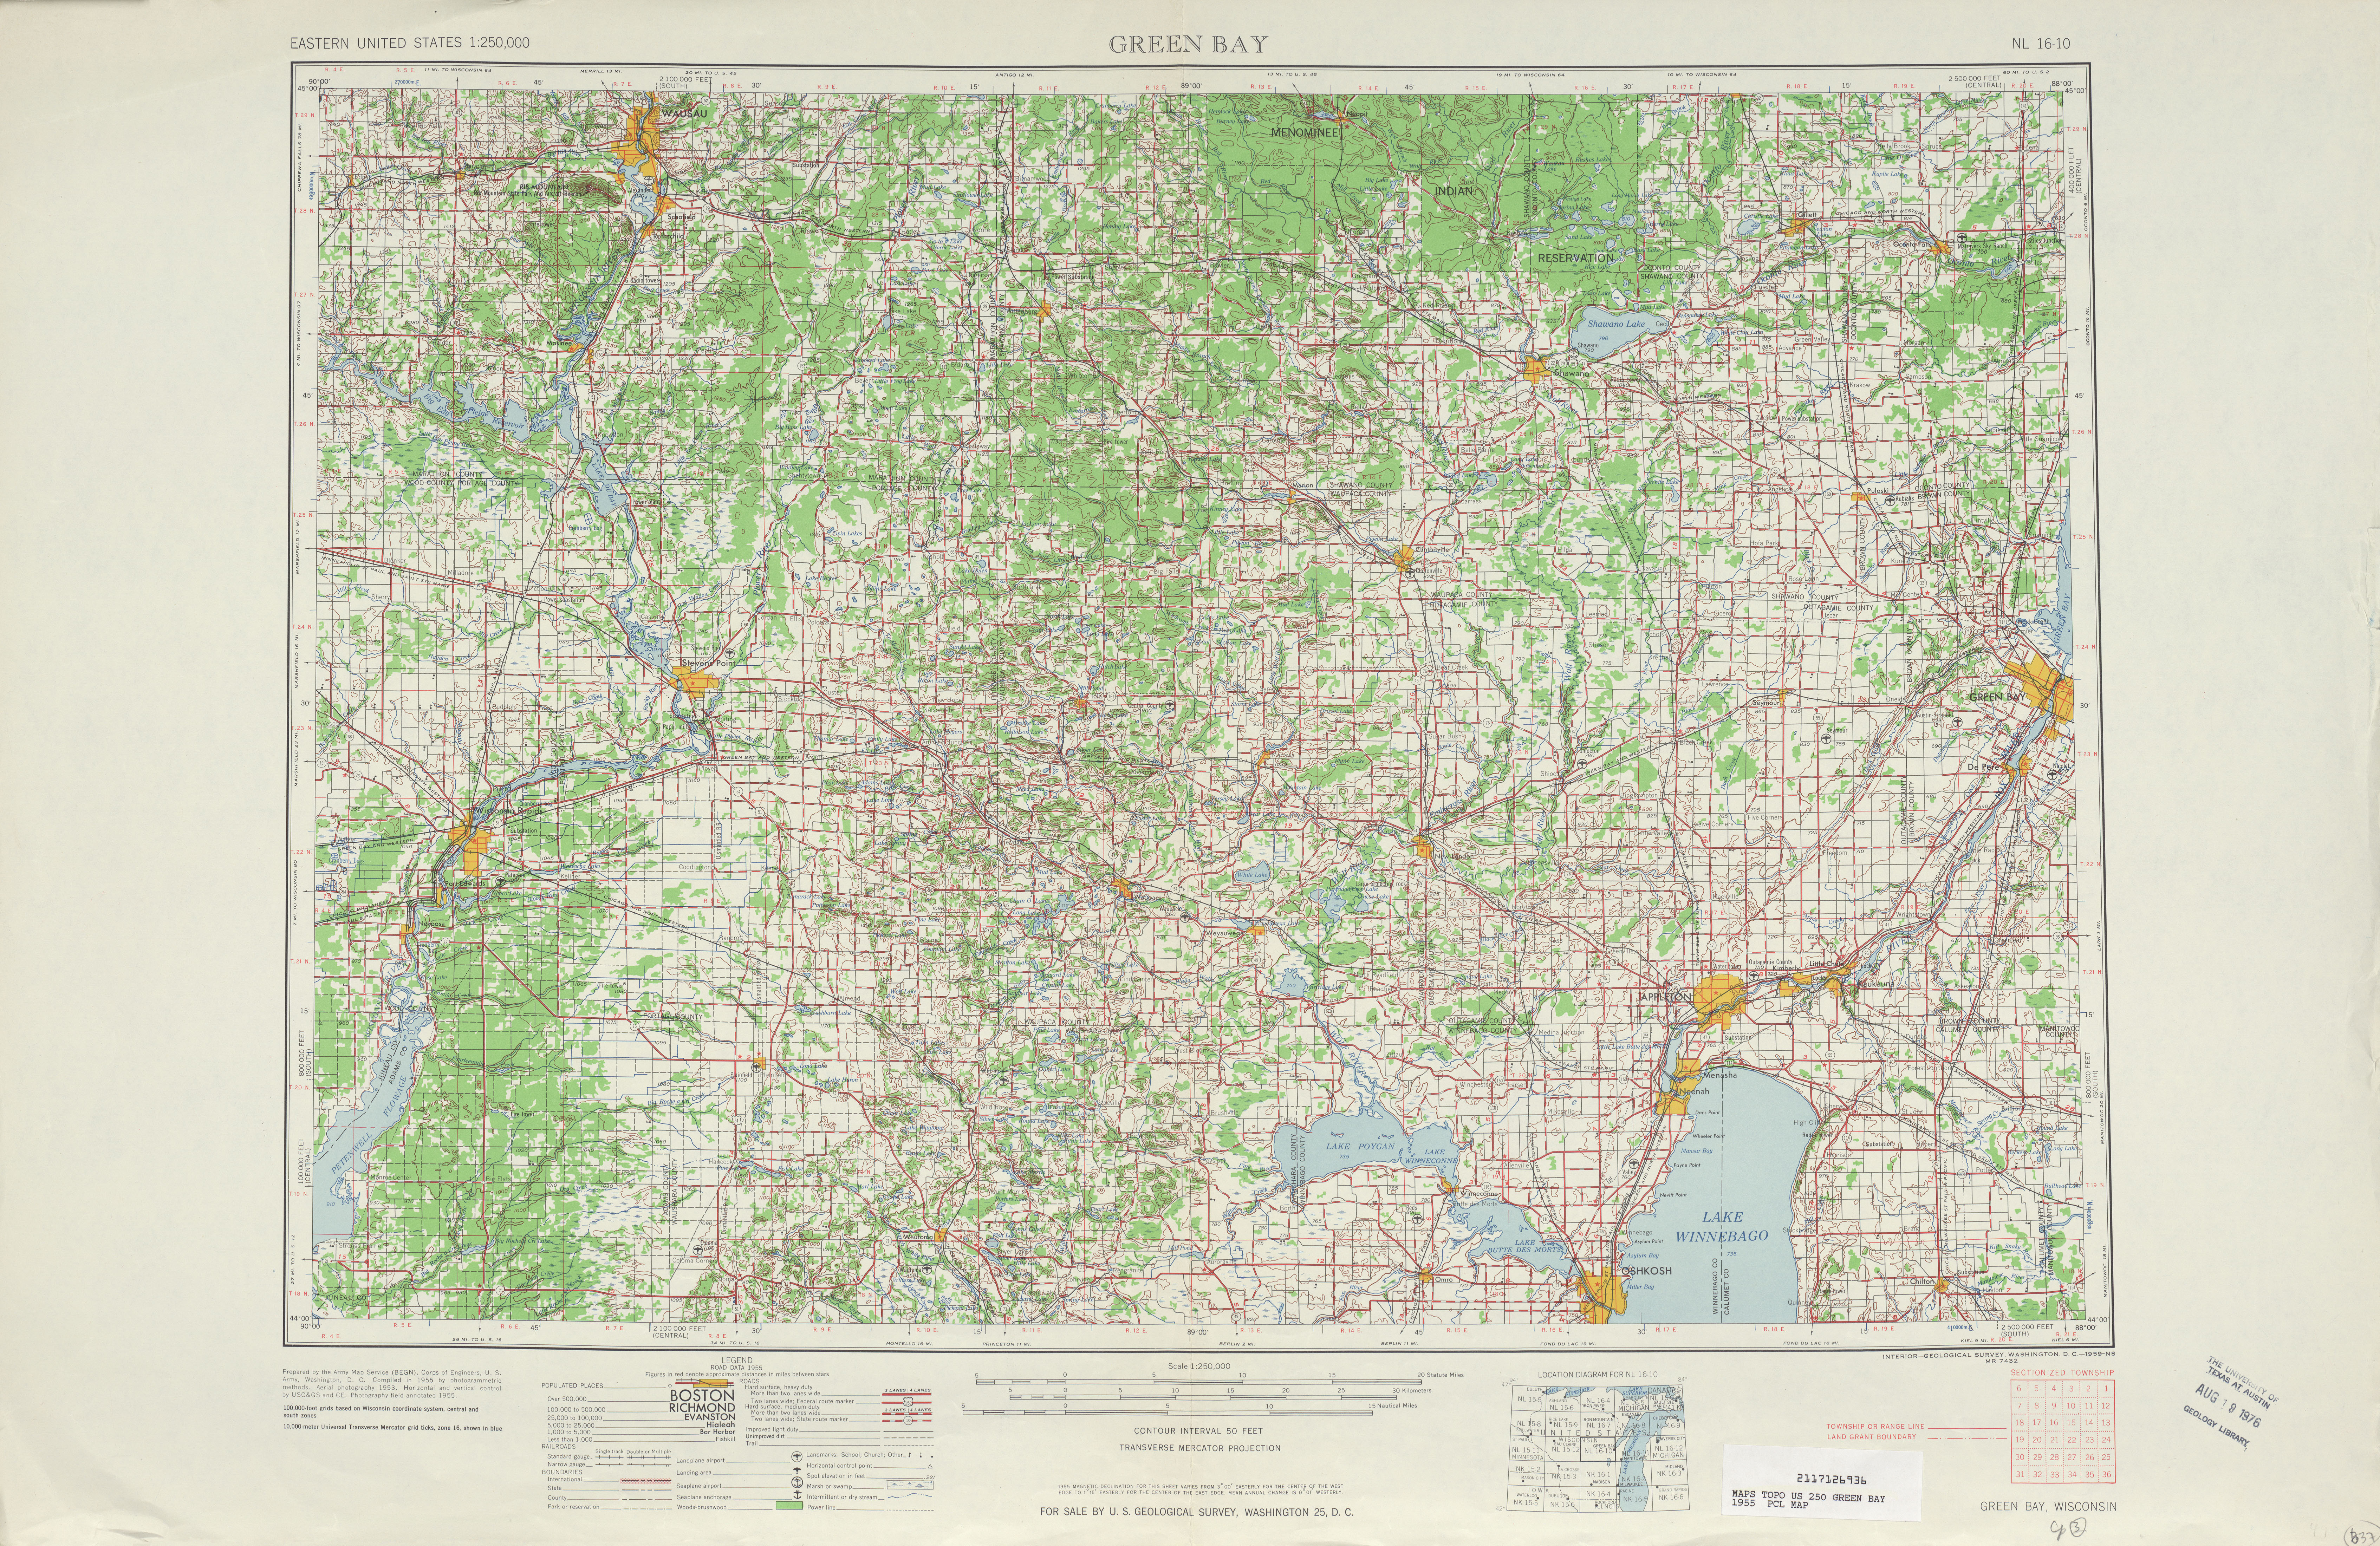 Green Bay Topographic Map Sheet, United States 1955